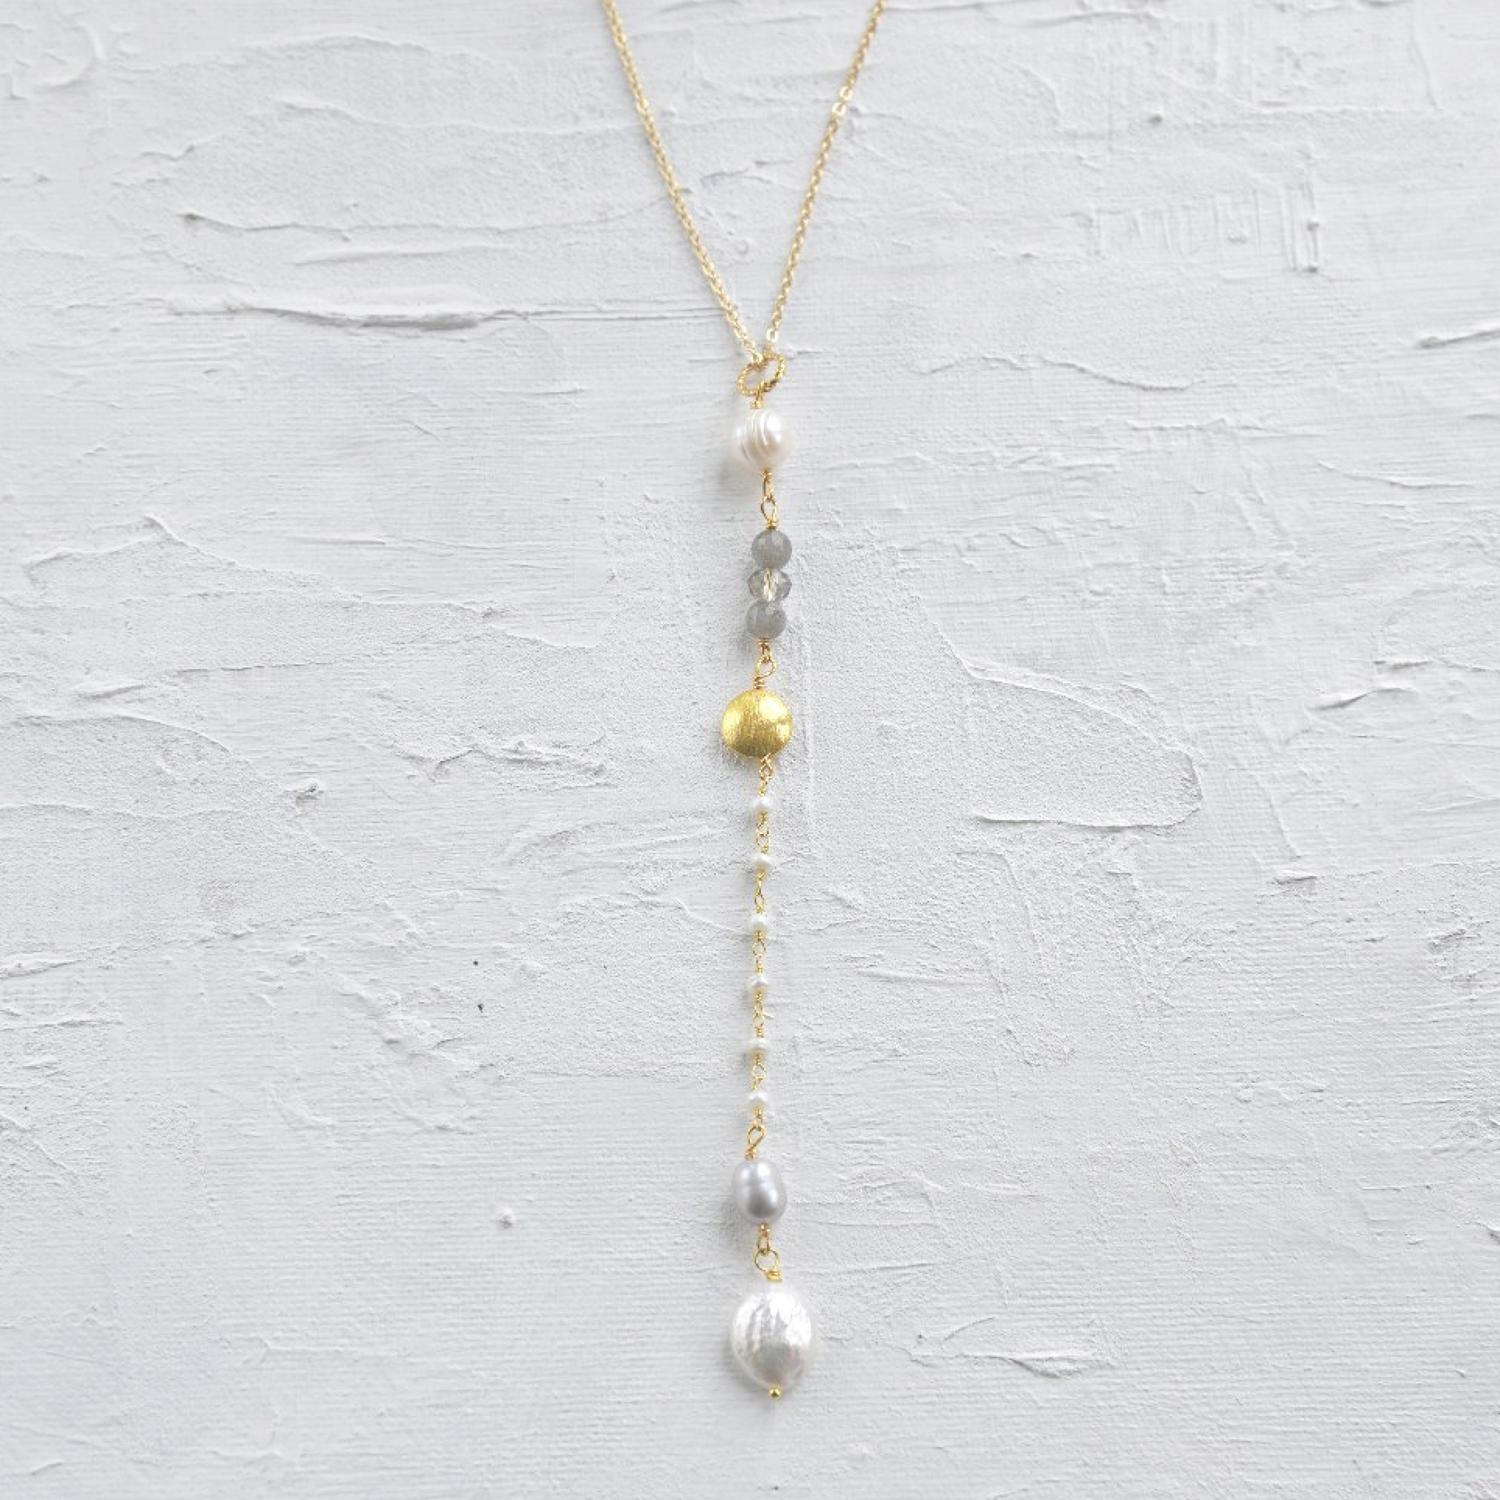 Downton necklace pearl